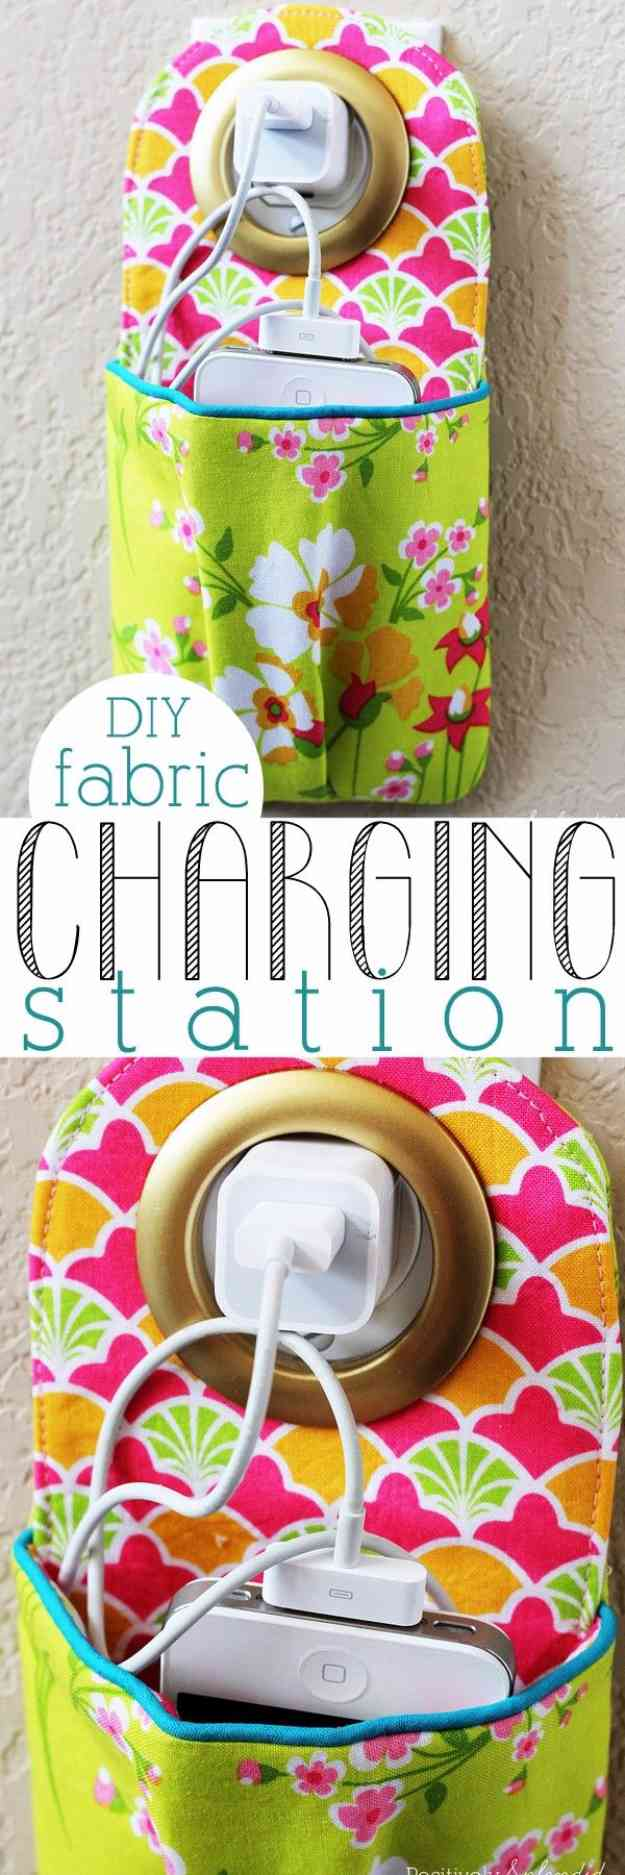 Sewing Projects to Sell | Easy DIY Charging Station #sewingideas #sewingprojects